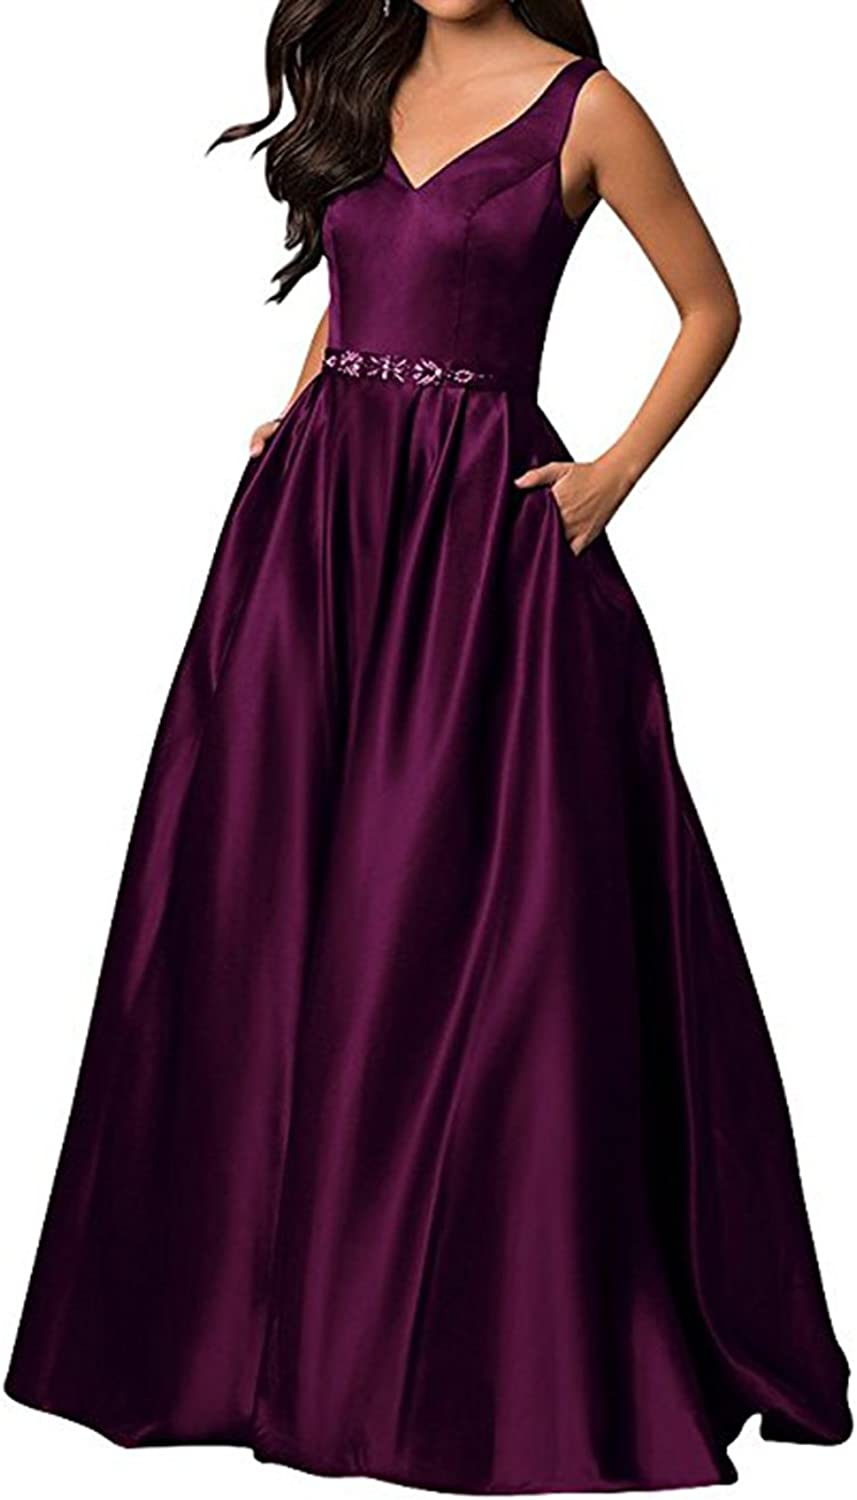 Alilith.Z Sexy V Neck Long Prom Dresses Beaded Sash Formal Evening Dresses Party Gowns for Women with Pockets